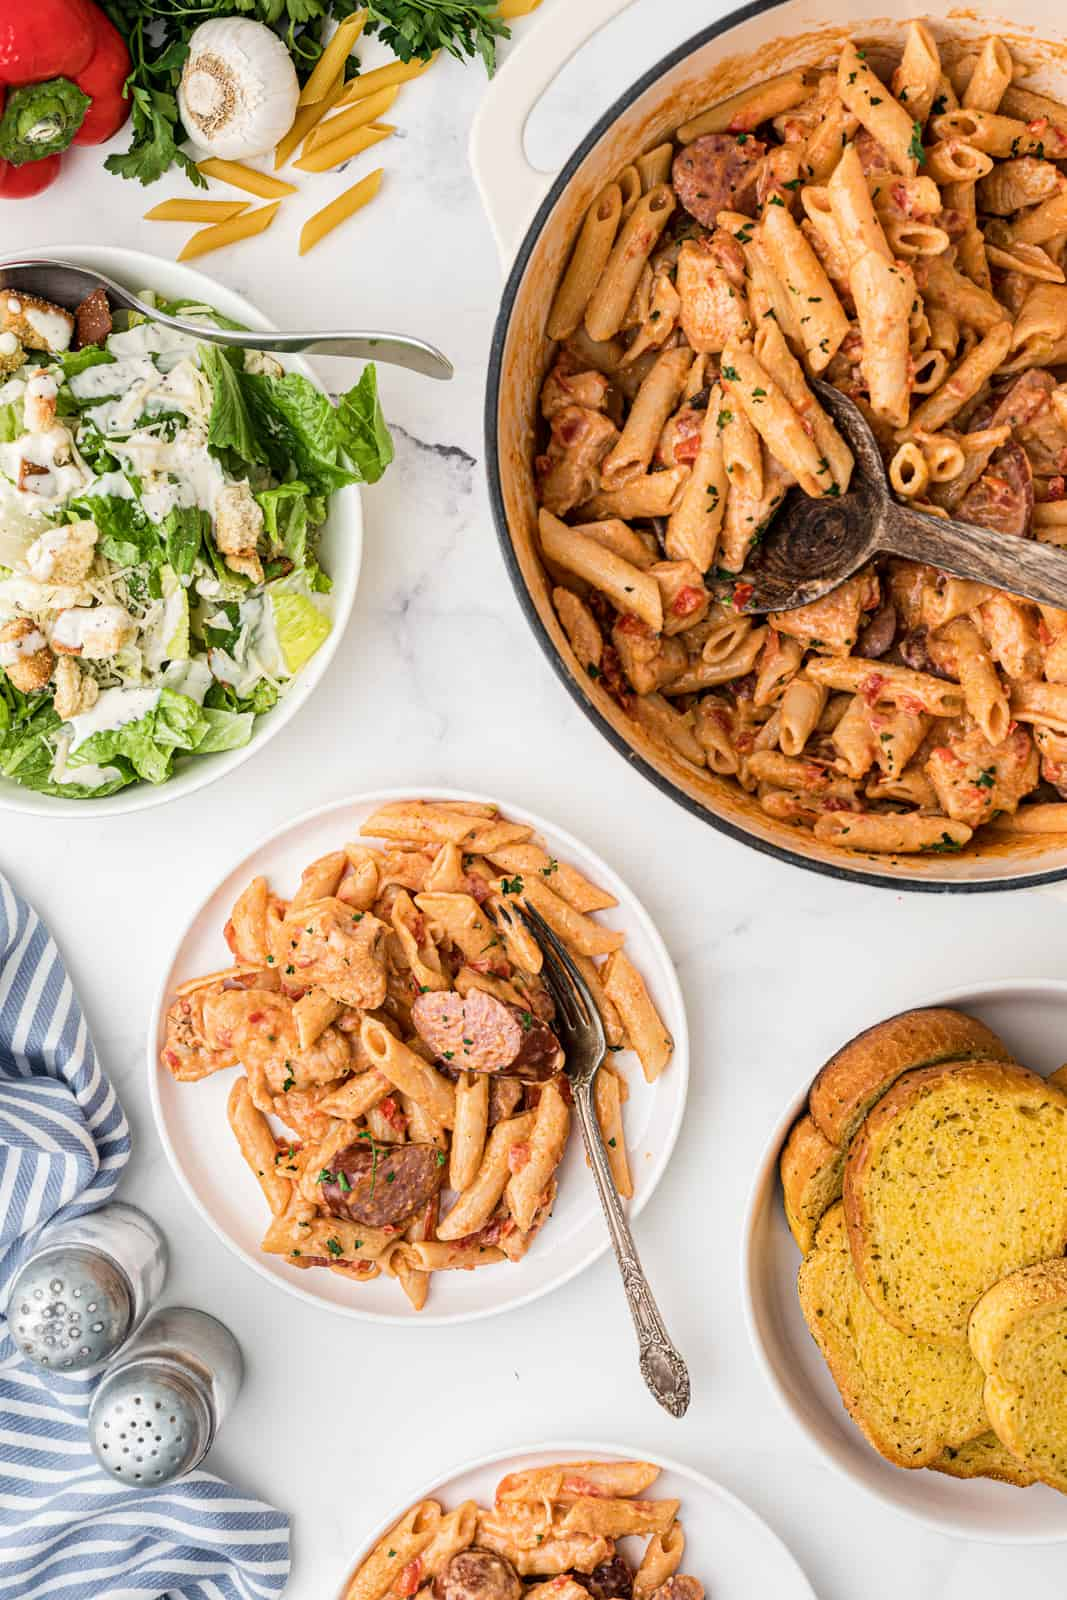 Overhead of Cajun Pasta Recipe in dutch oven and on plate with side salad